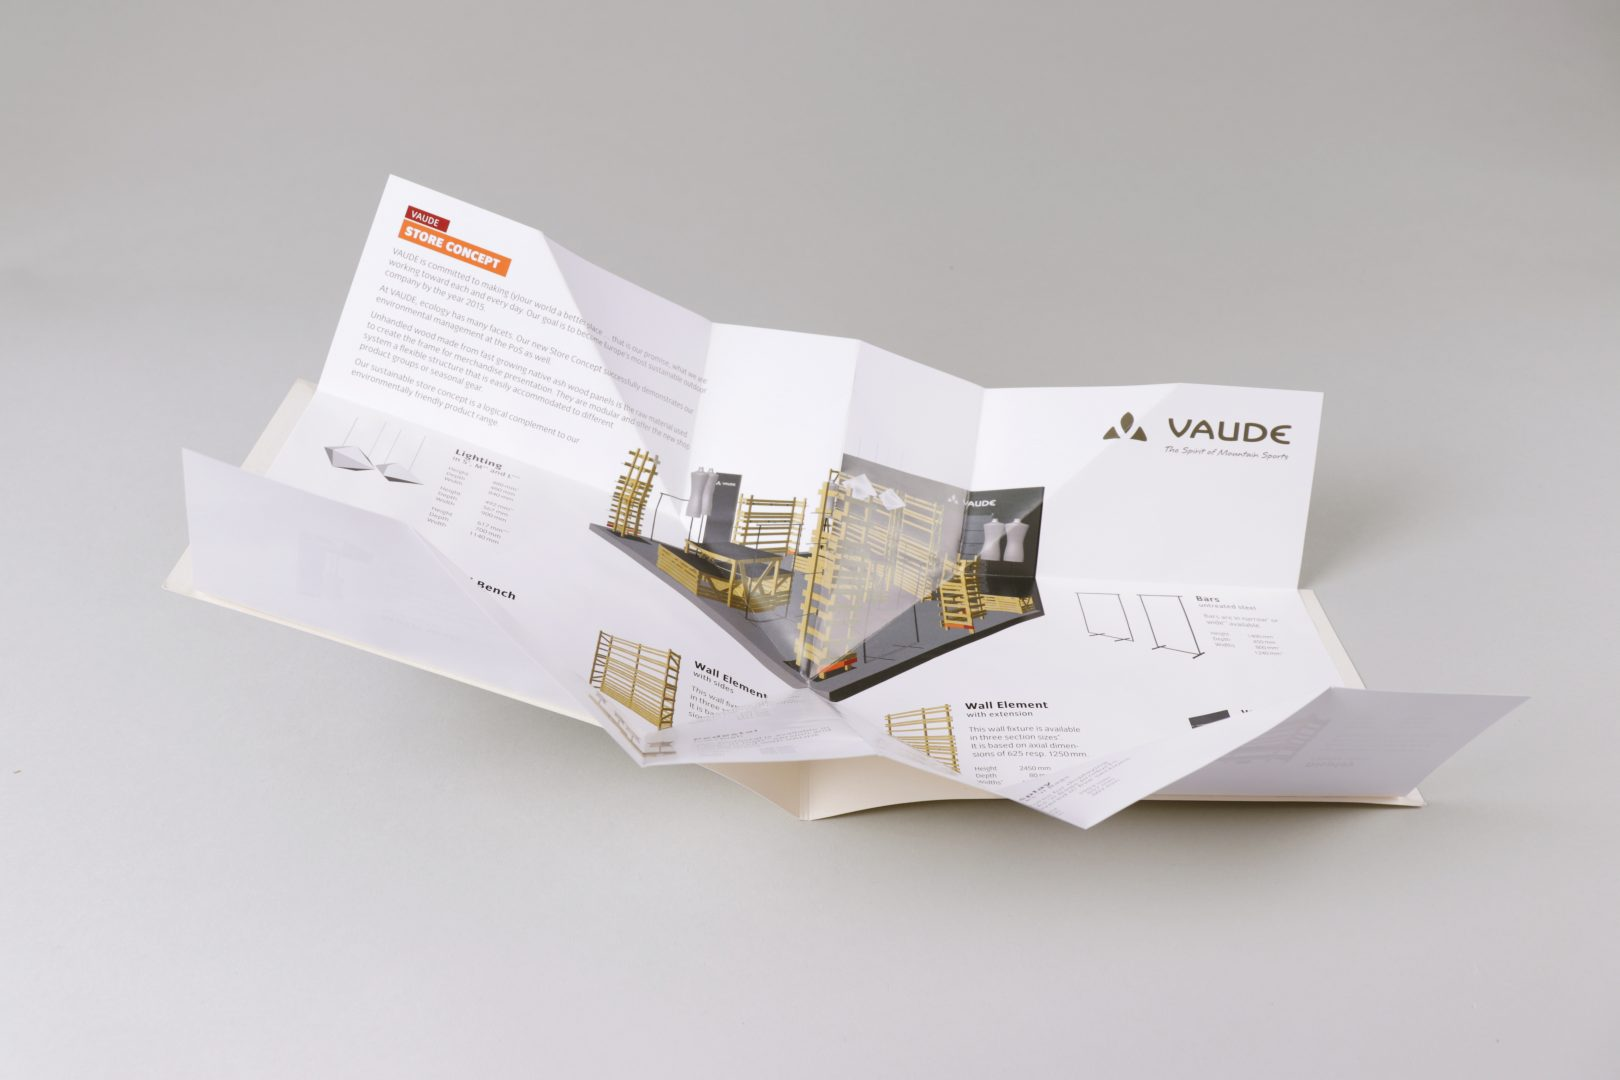 atelier-522-vaude-shop-manual-3